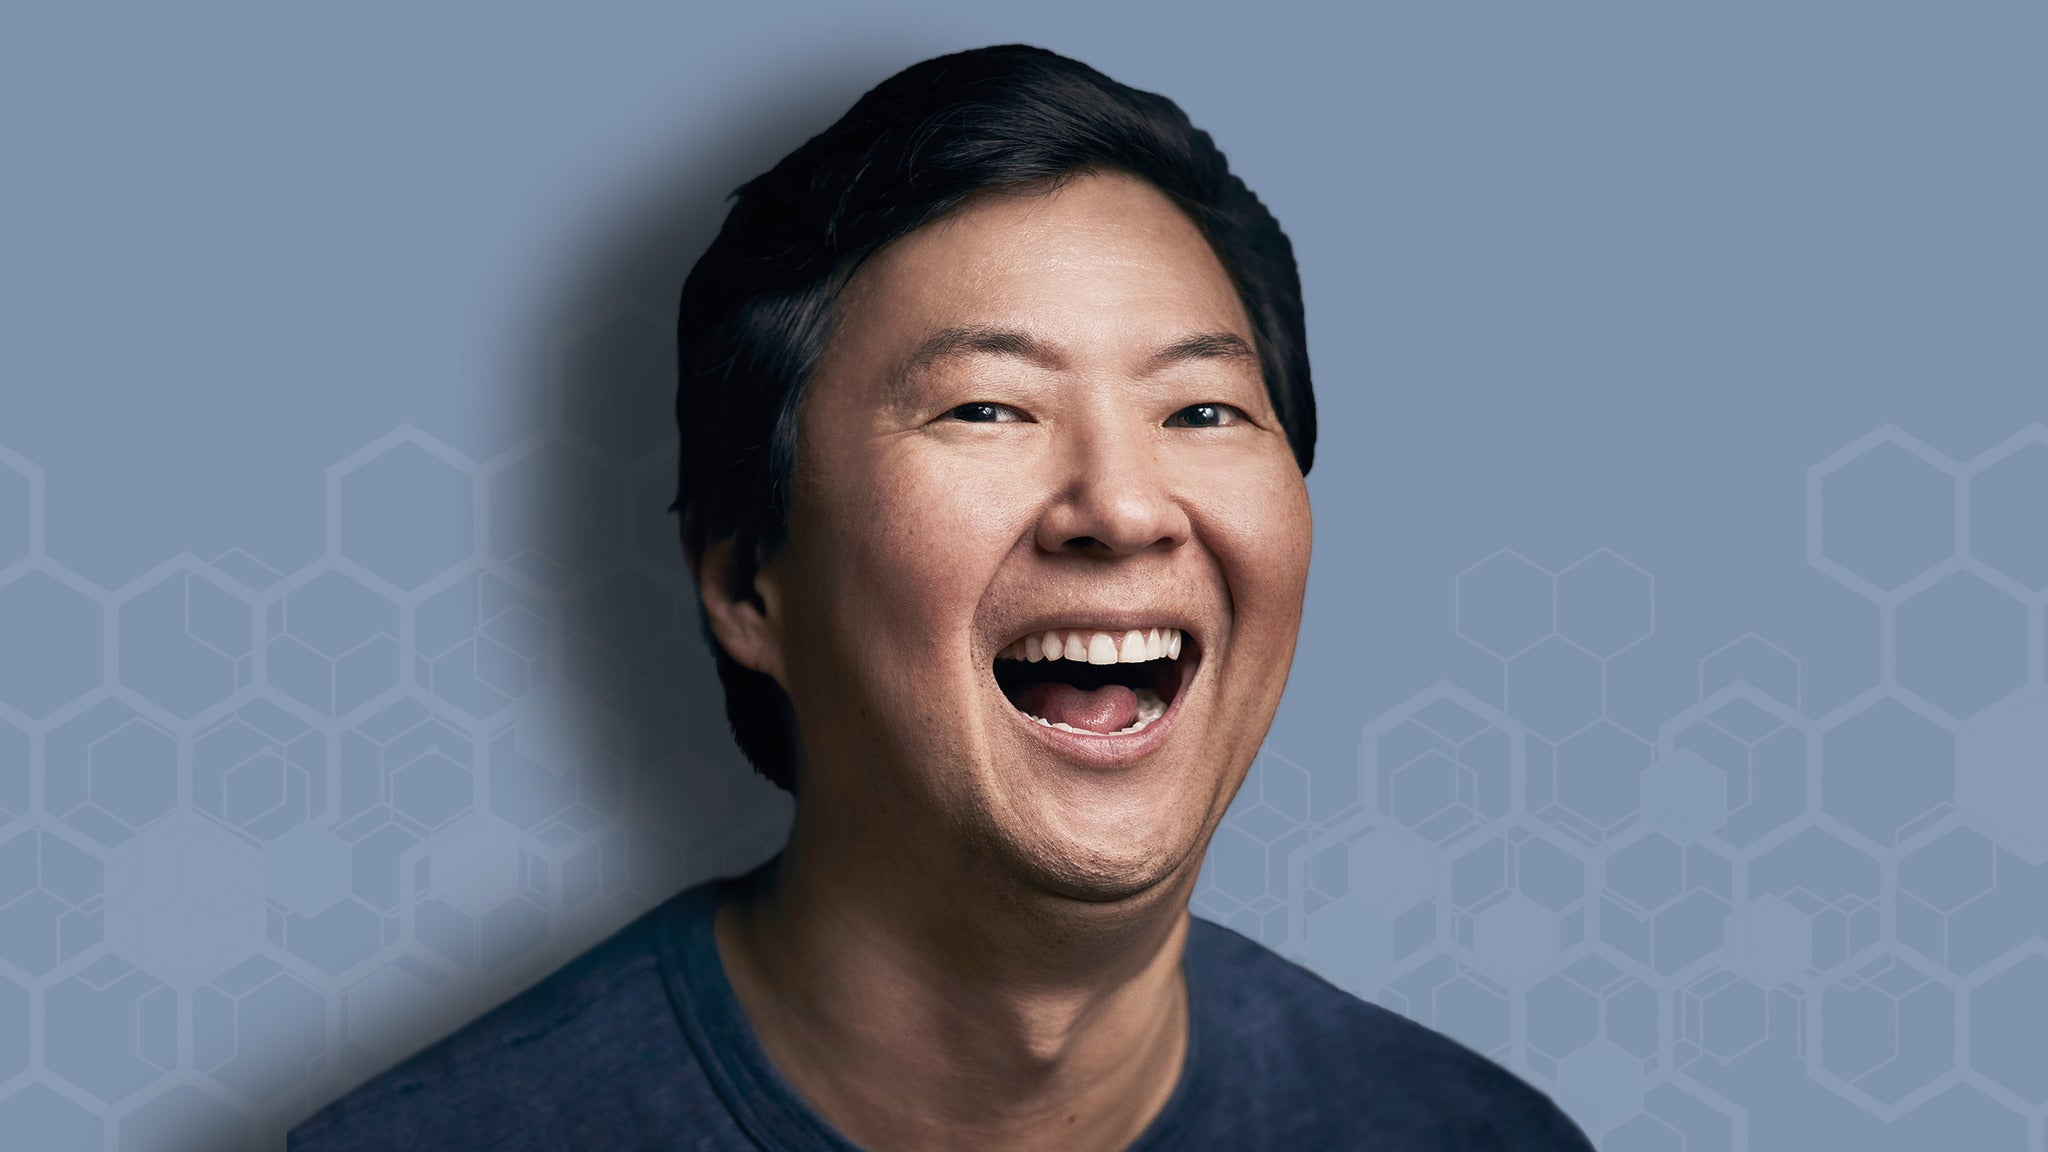 Ken Jeong at Music Box at the Borgata - Atlantic City, NJ 08401